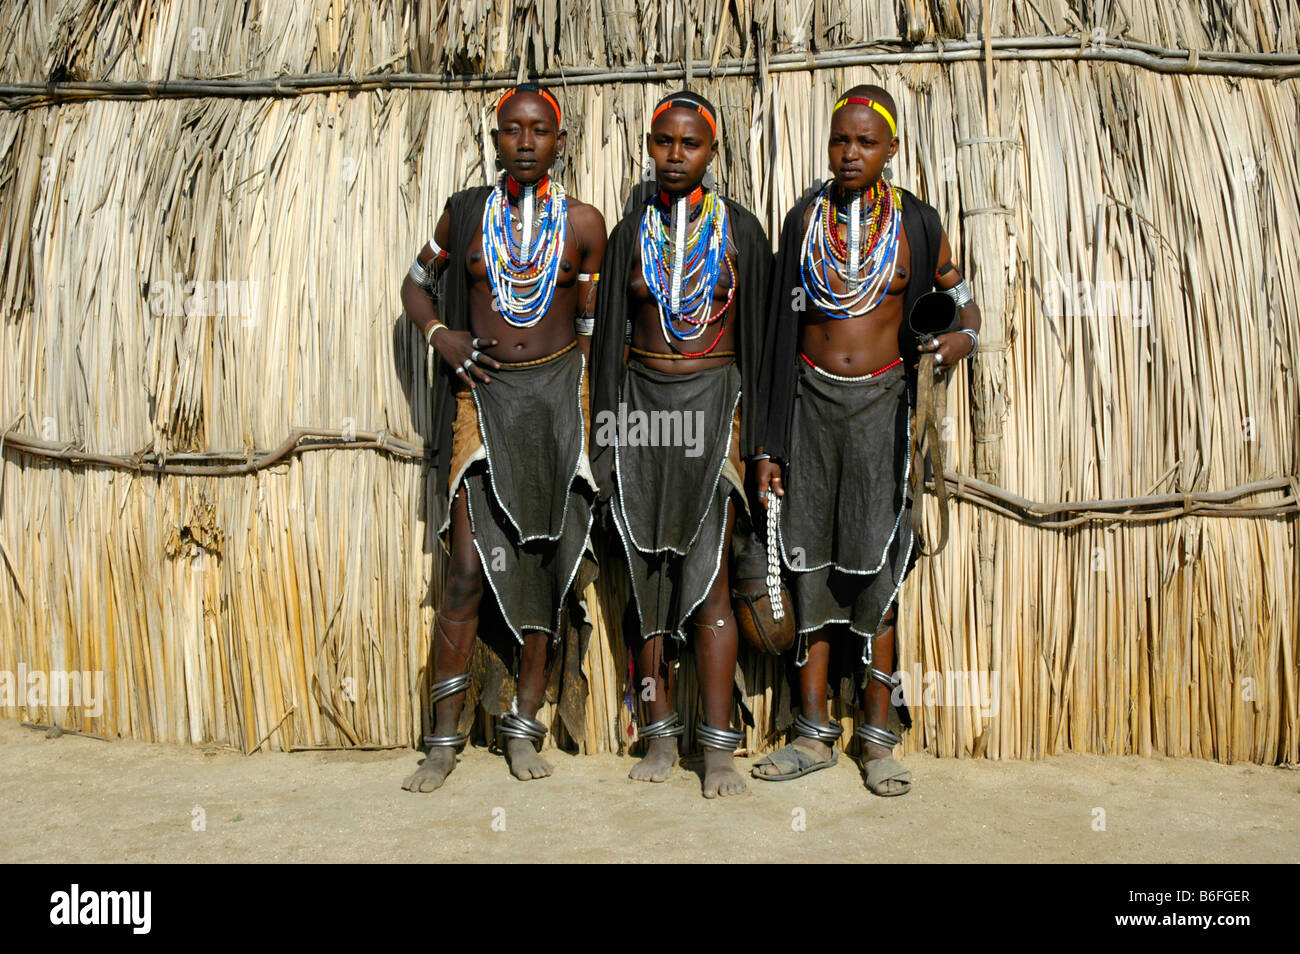 Three young women wearing leather skirts and lots of necklaces in front of straw hut, Erbore people, Weyto, Ethiopia, - Stock Image